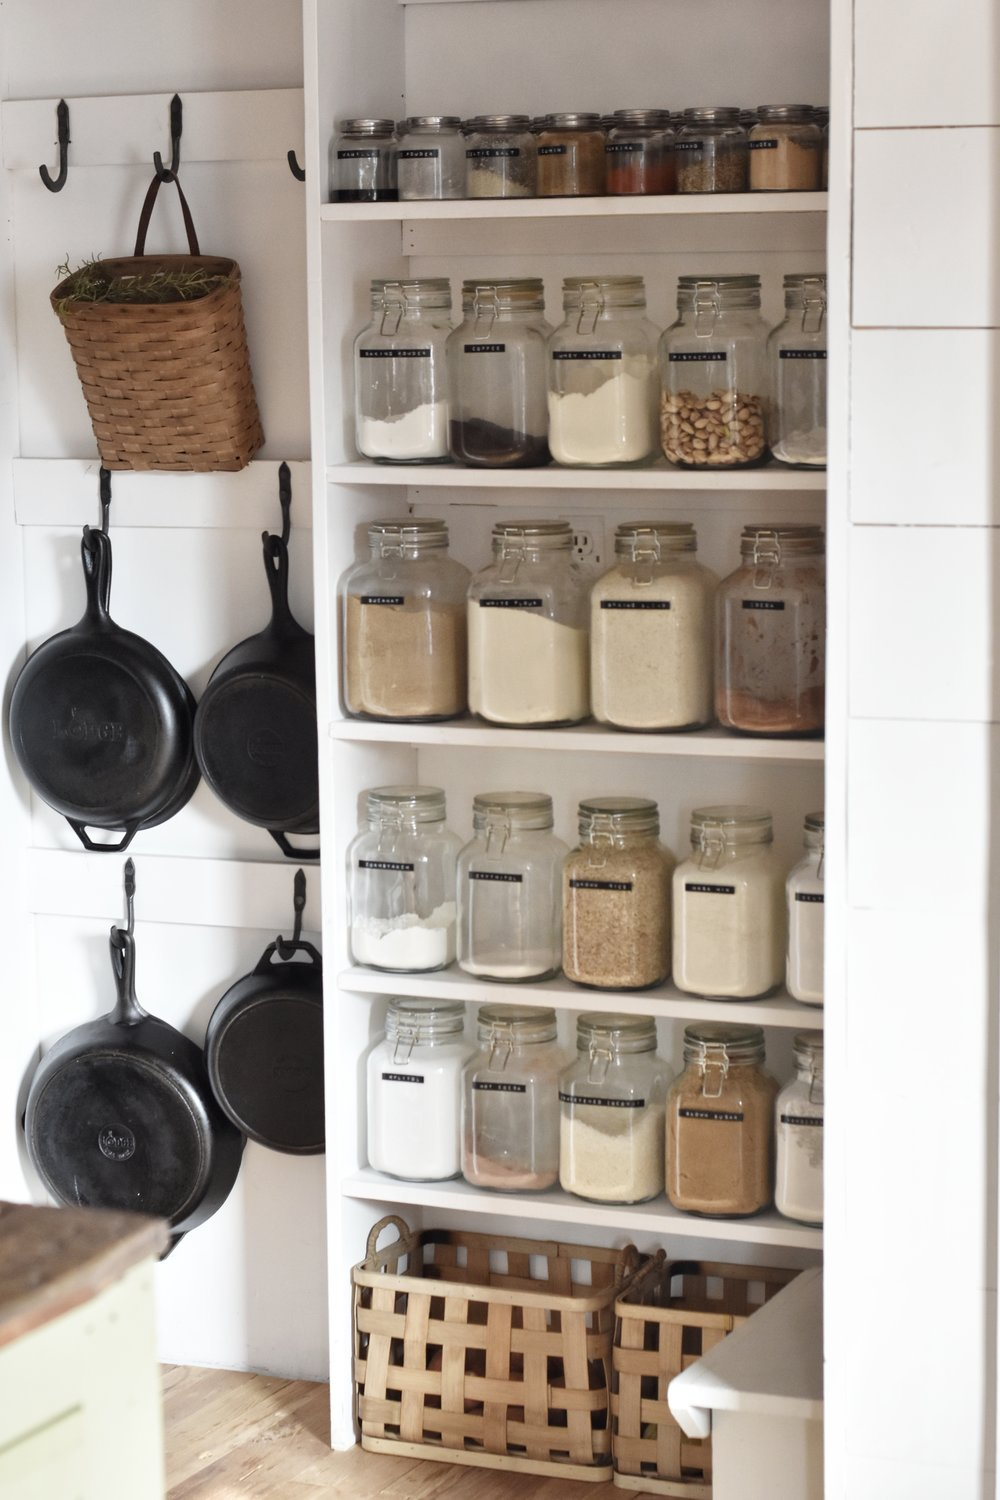 Flat Creek Farmhouse - Pantry Essentials